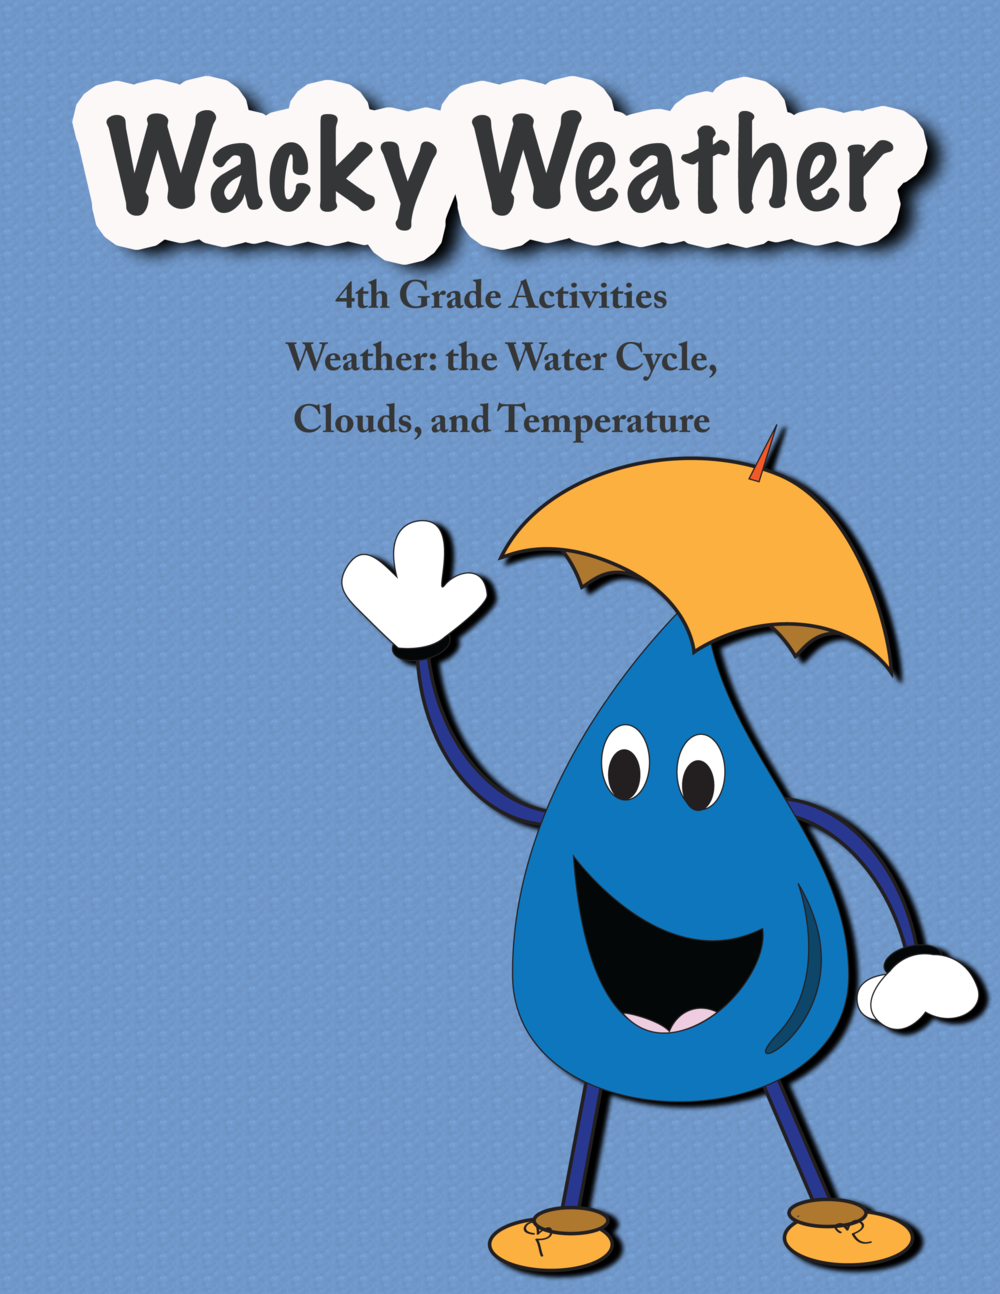 Wacky Weather-4th Grade